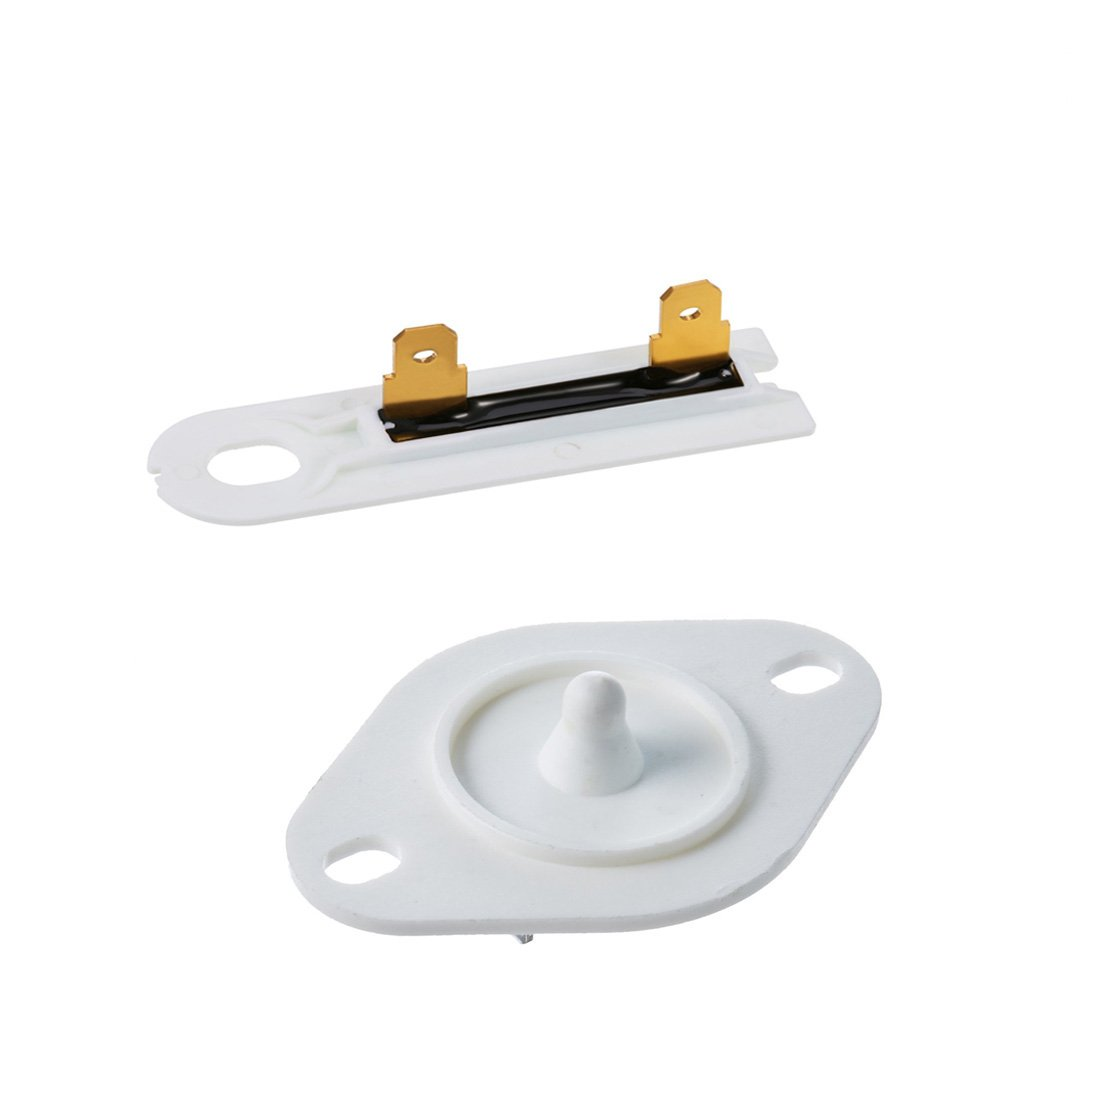 Siwdoy 8577274 Dryer Thermistor and 3392519 Dryer Thermal Fuse for Whirlpool & Kenmore Dryers